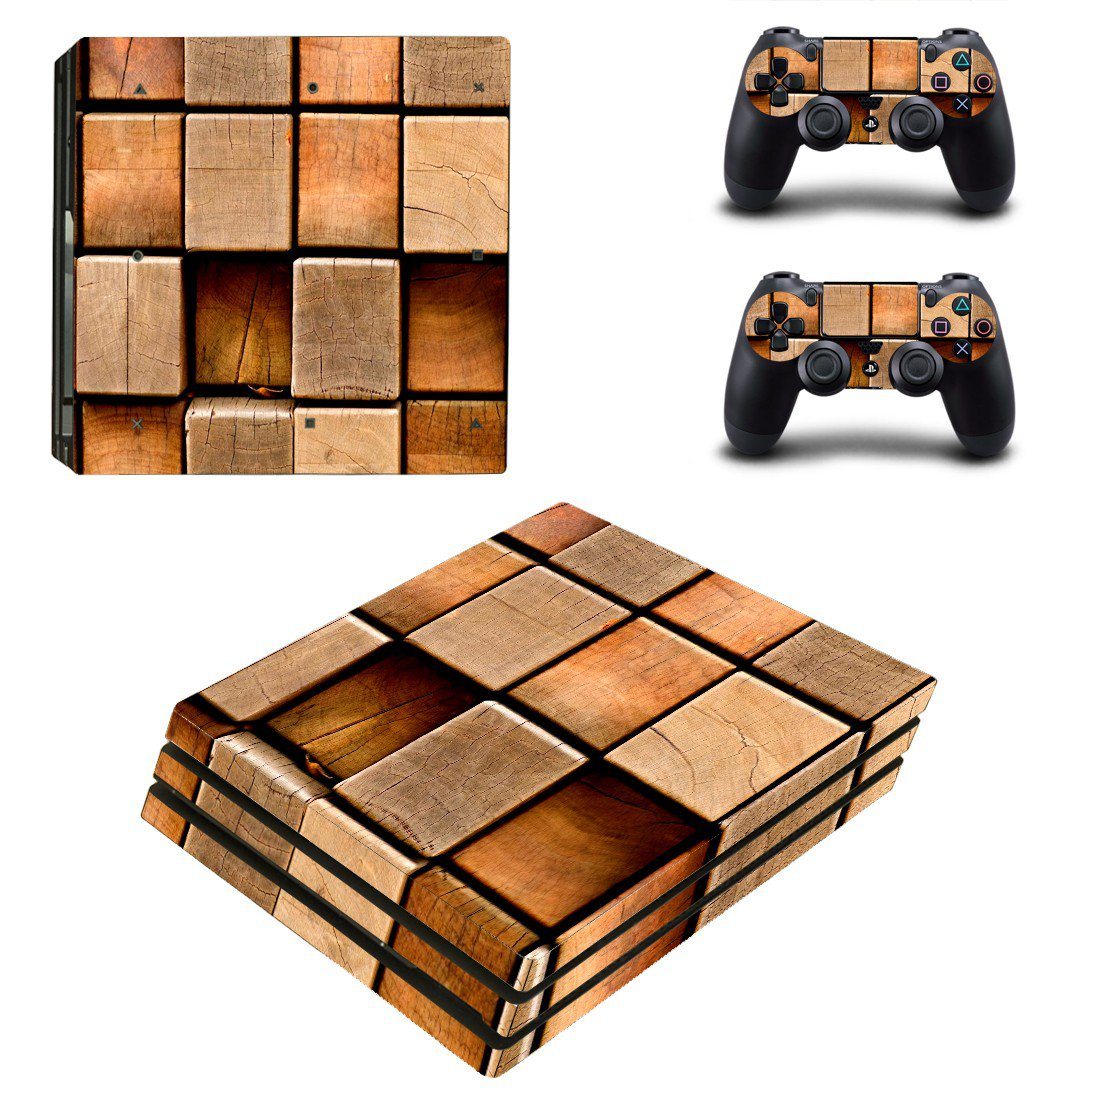 Square block skin decal for console and controllers